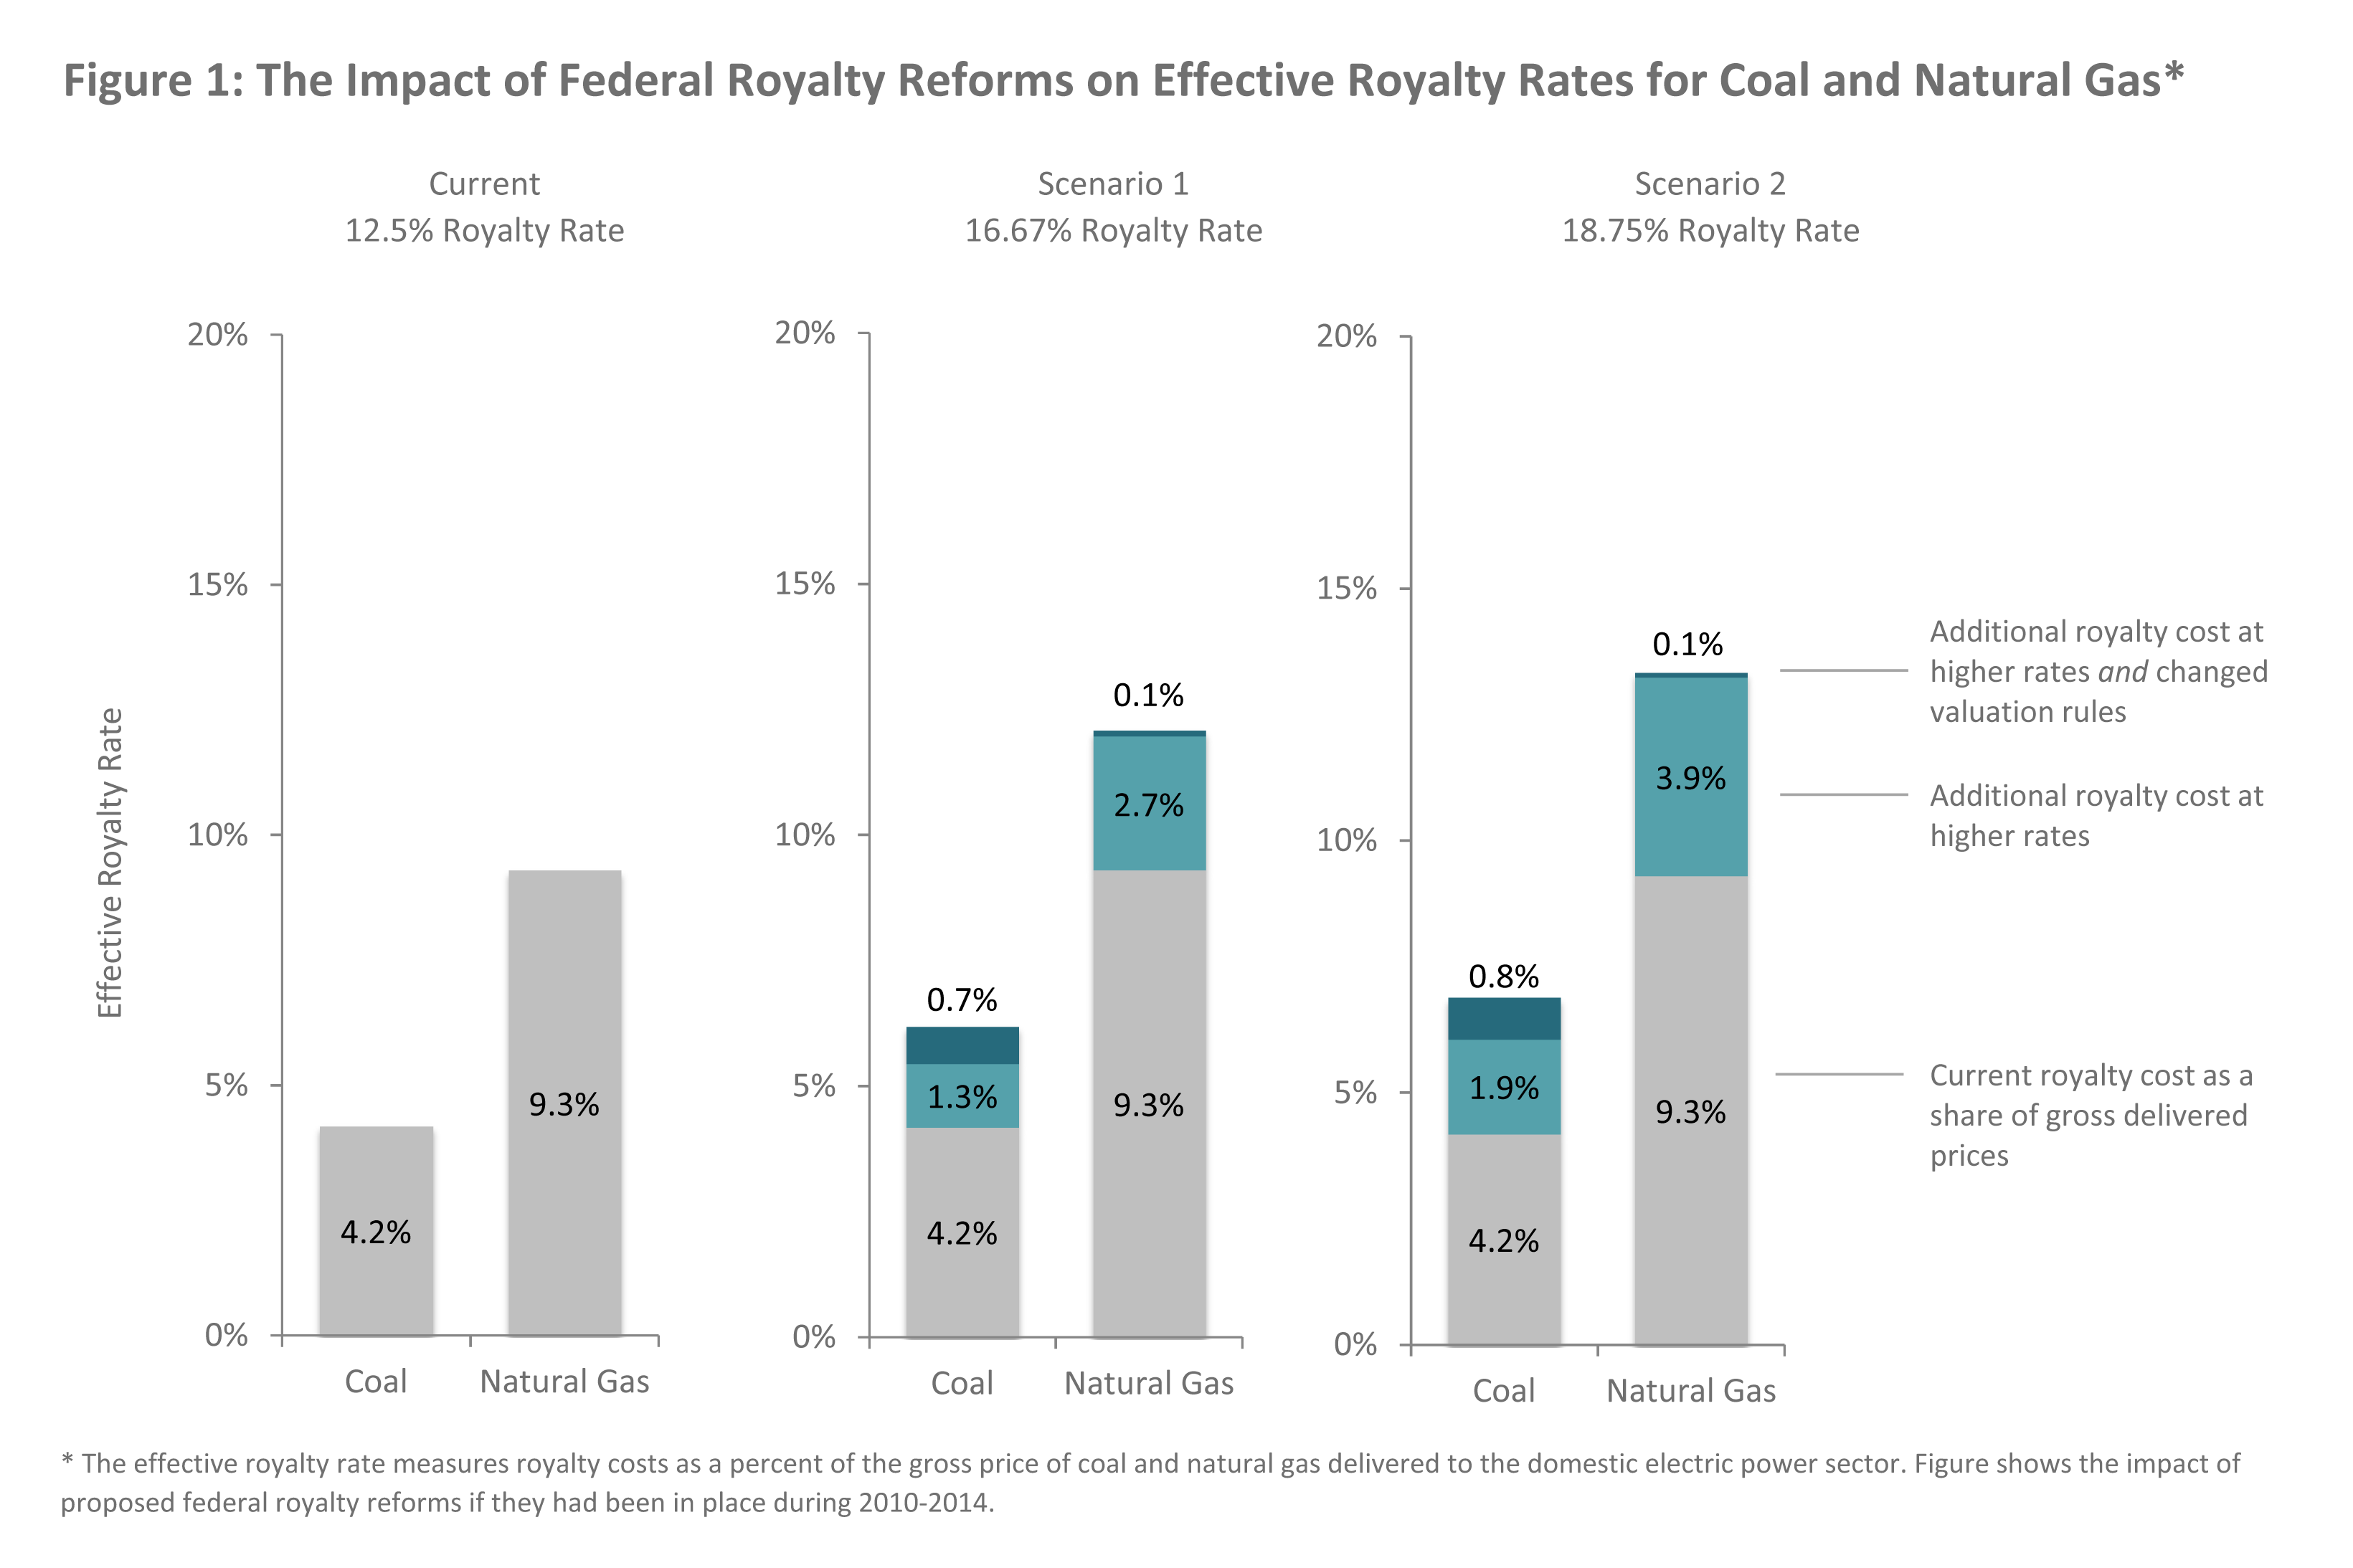 Outcomes Of Higher Federal Coal And Natural Gas Royalty